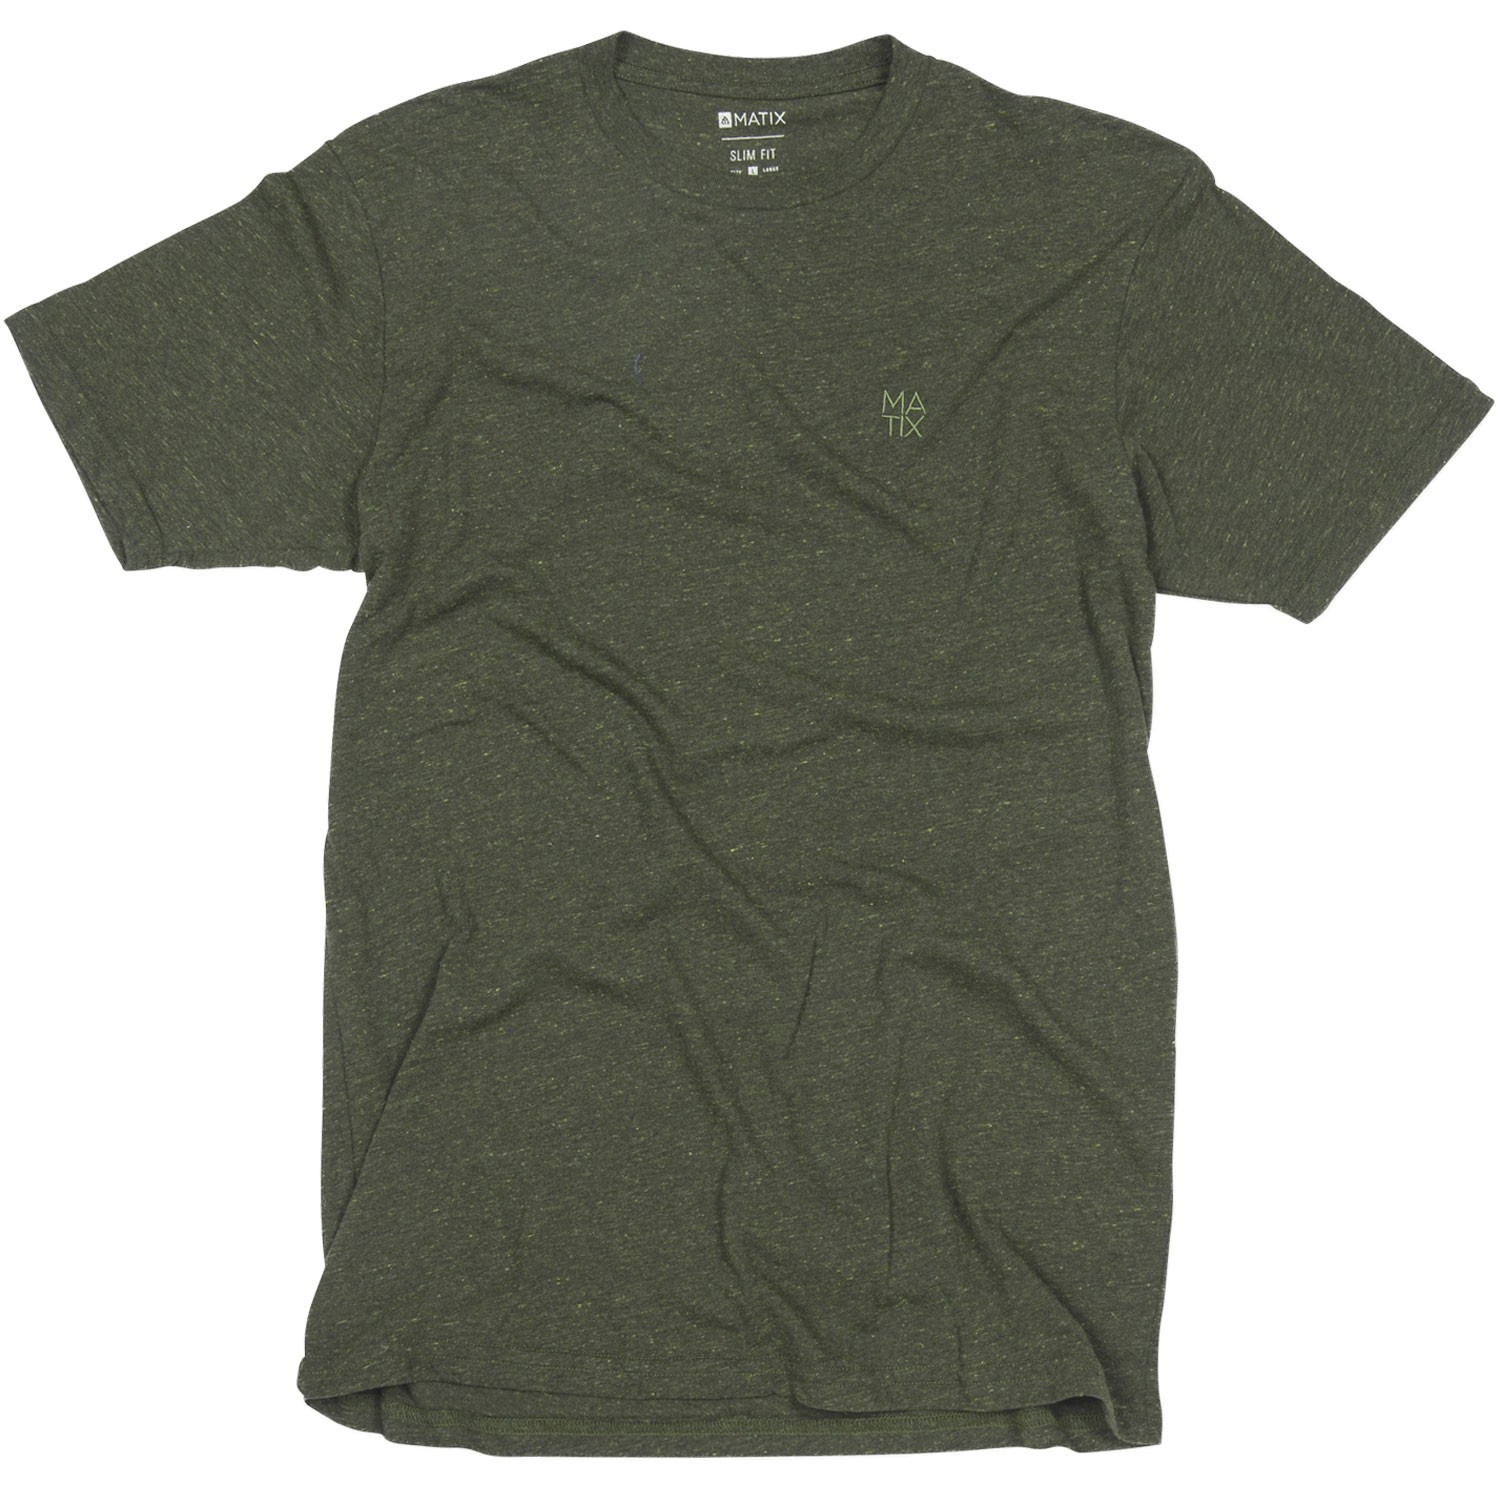 Matix Monostack T-Shirt - Military Green